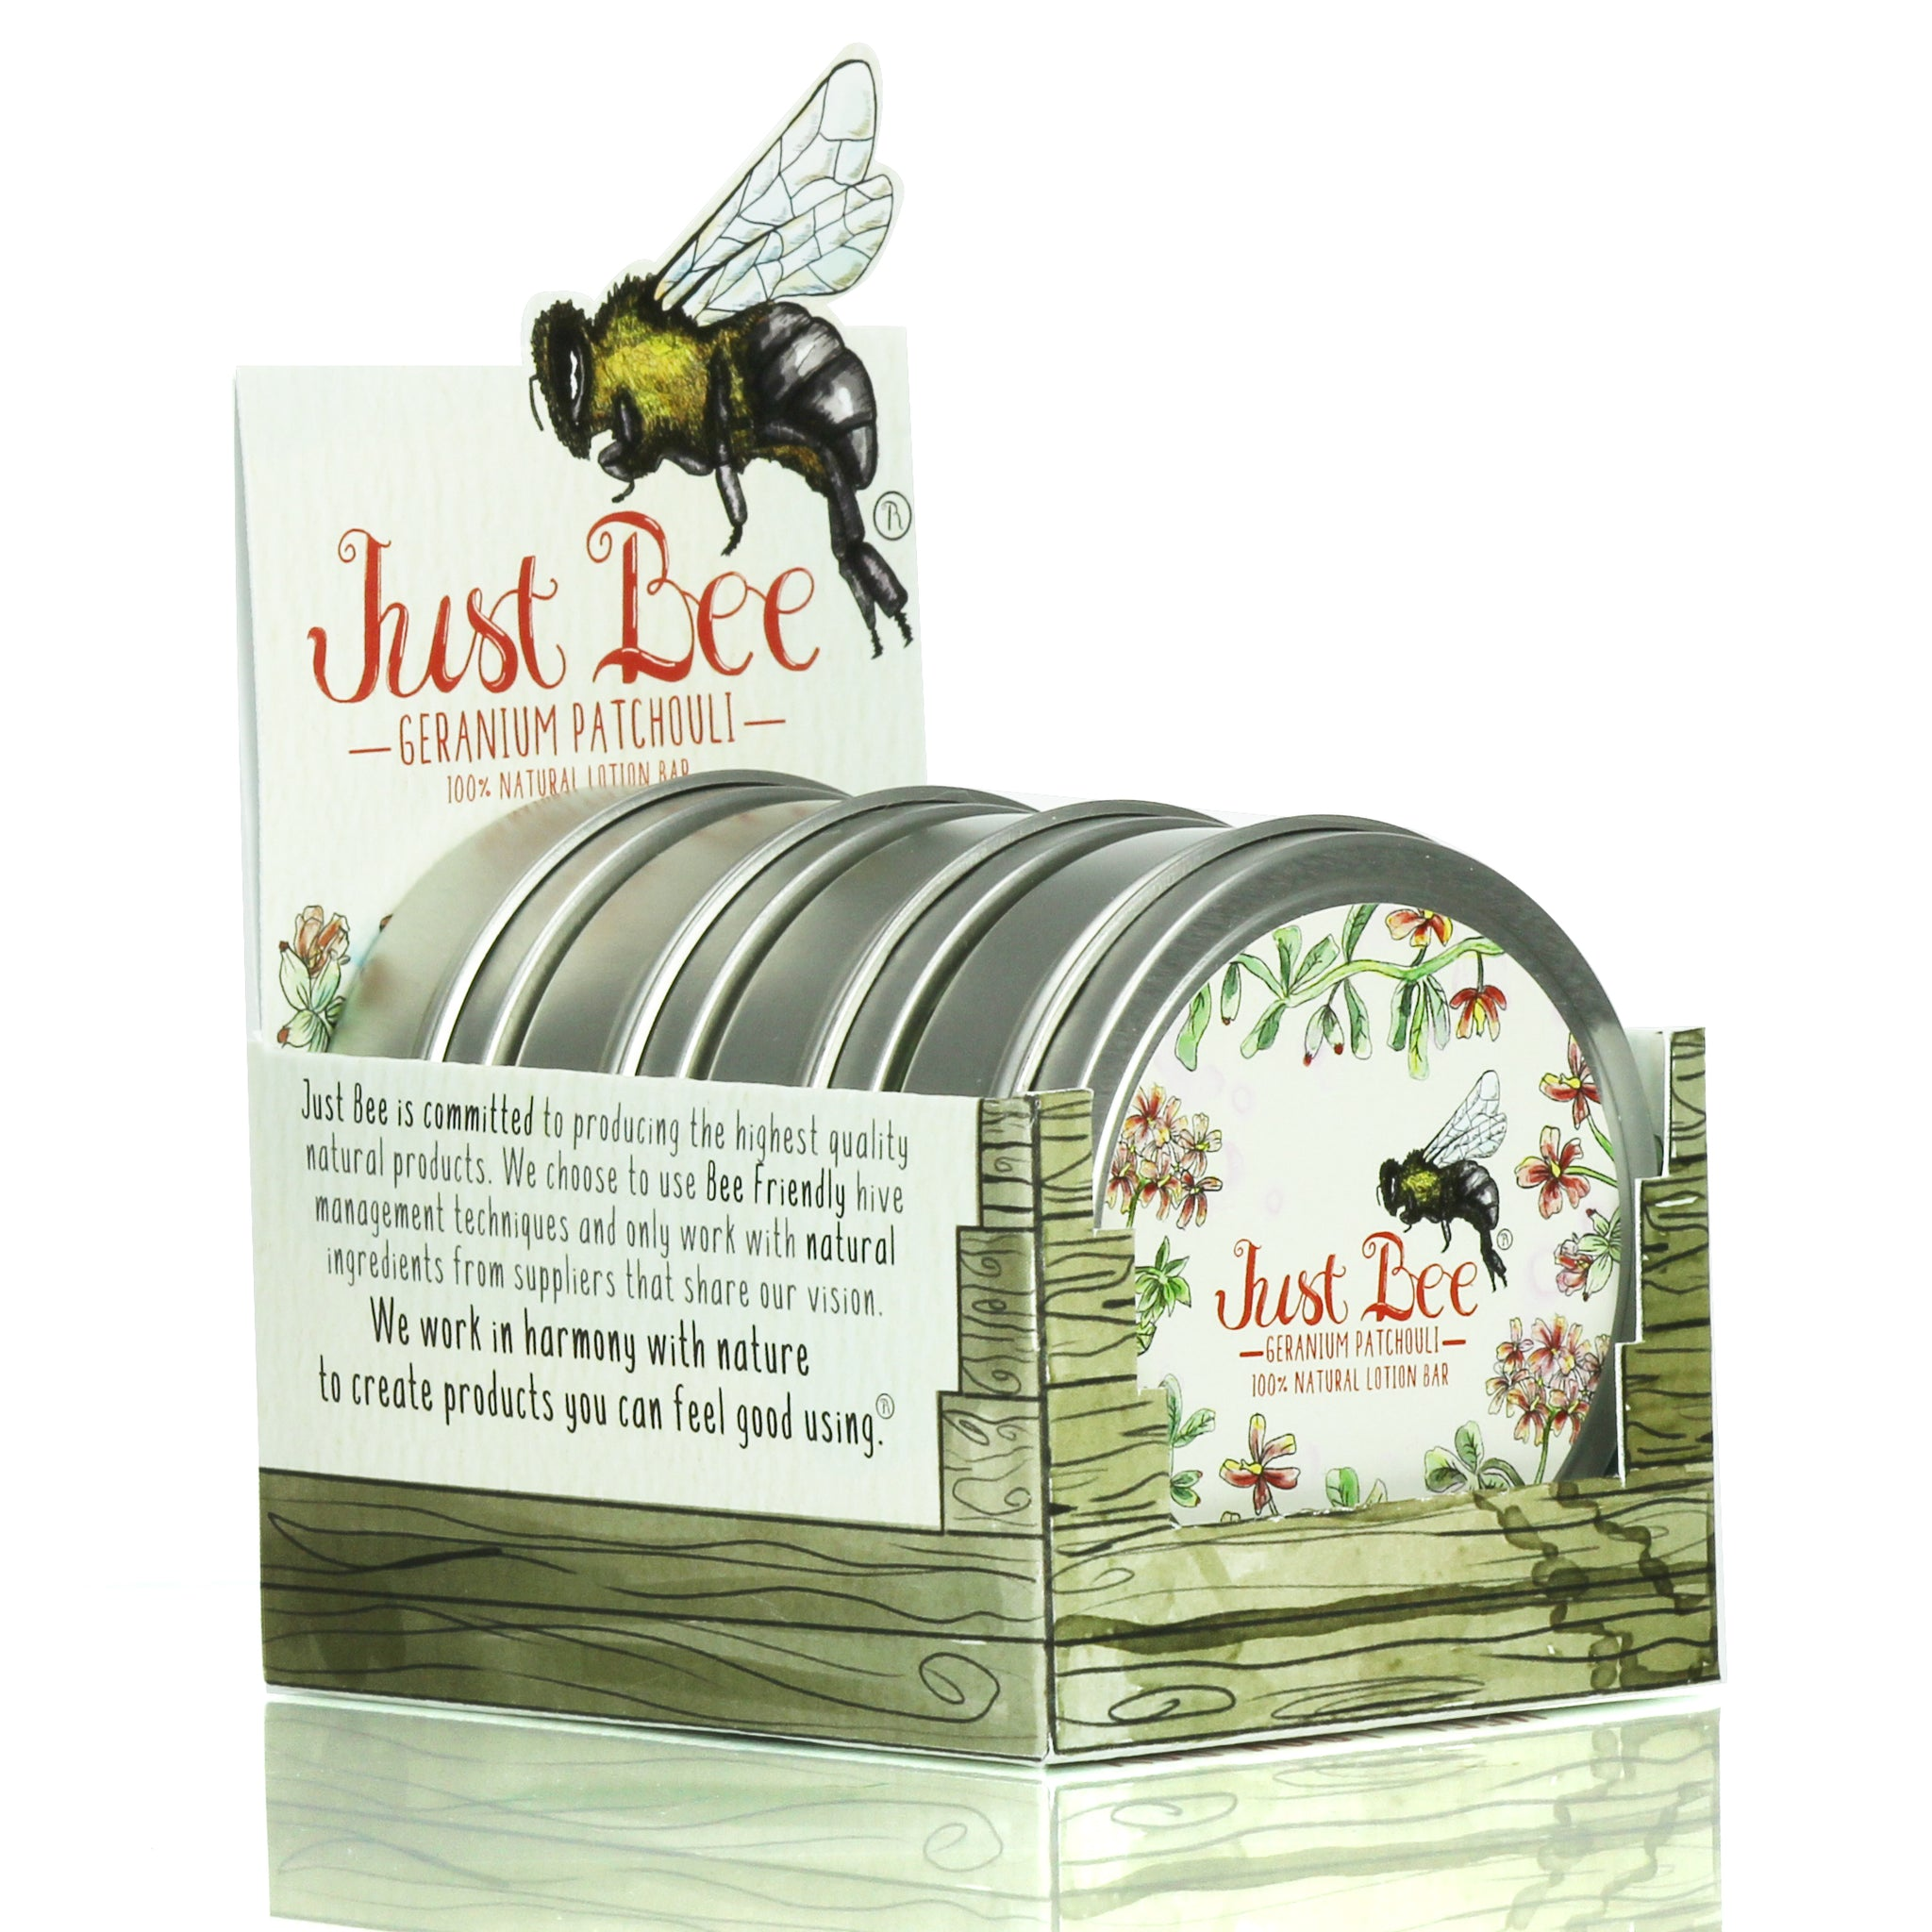 Just Bee Cosmetics - Lotion Bar - Patchouli Geranium Box